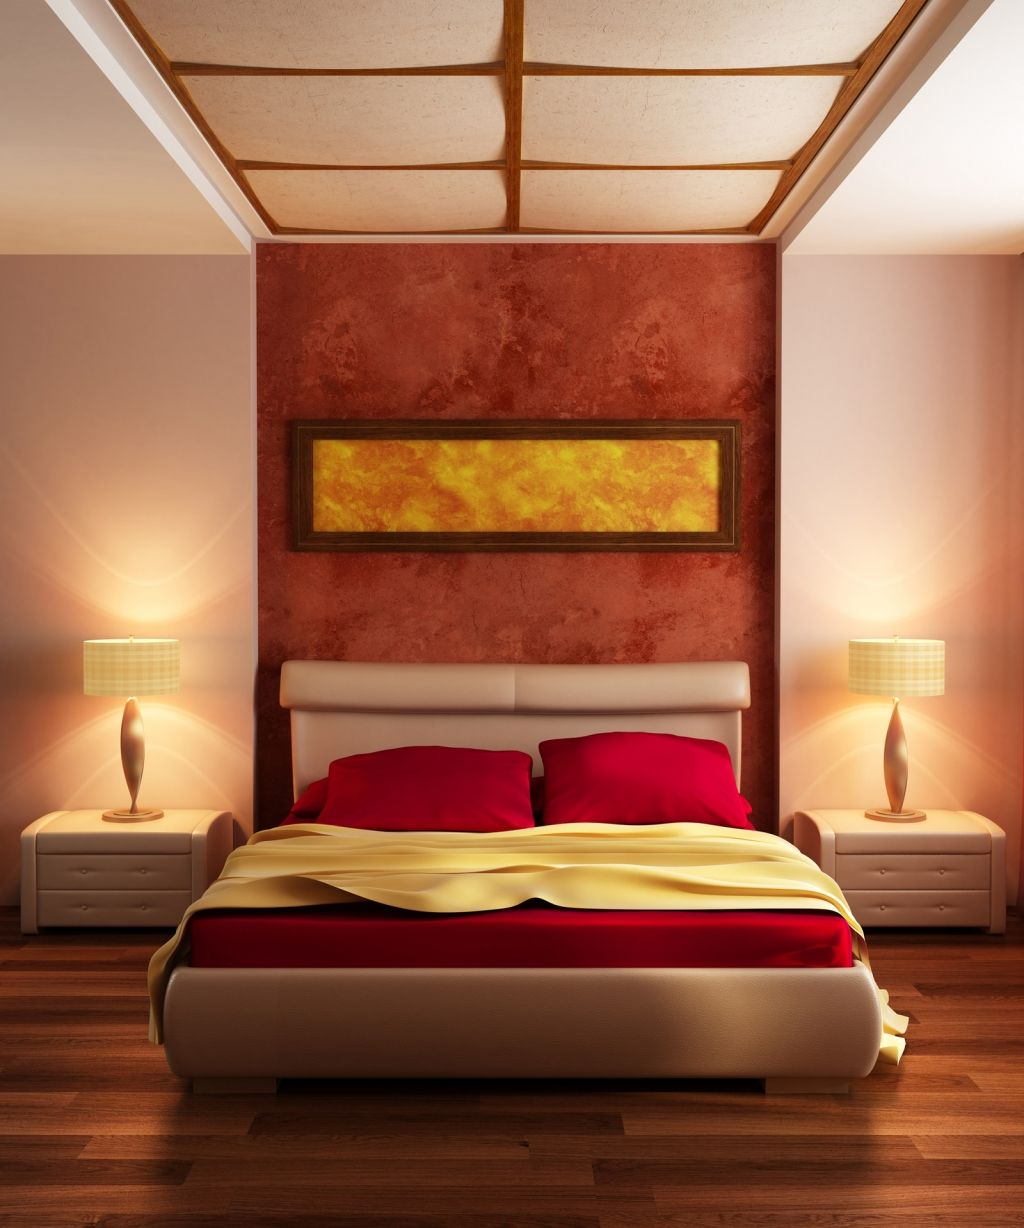 Bedroom Lovely Modern Red Bedroom With Classy Lamp Shade And Minimalist  Laminated Floor 21 Pictures Of